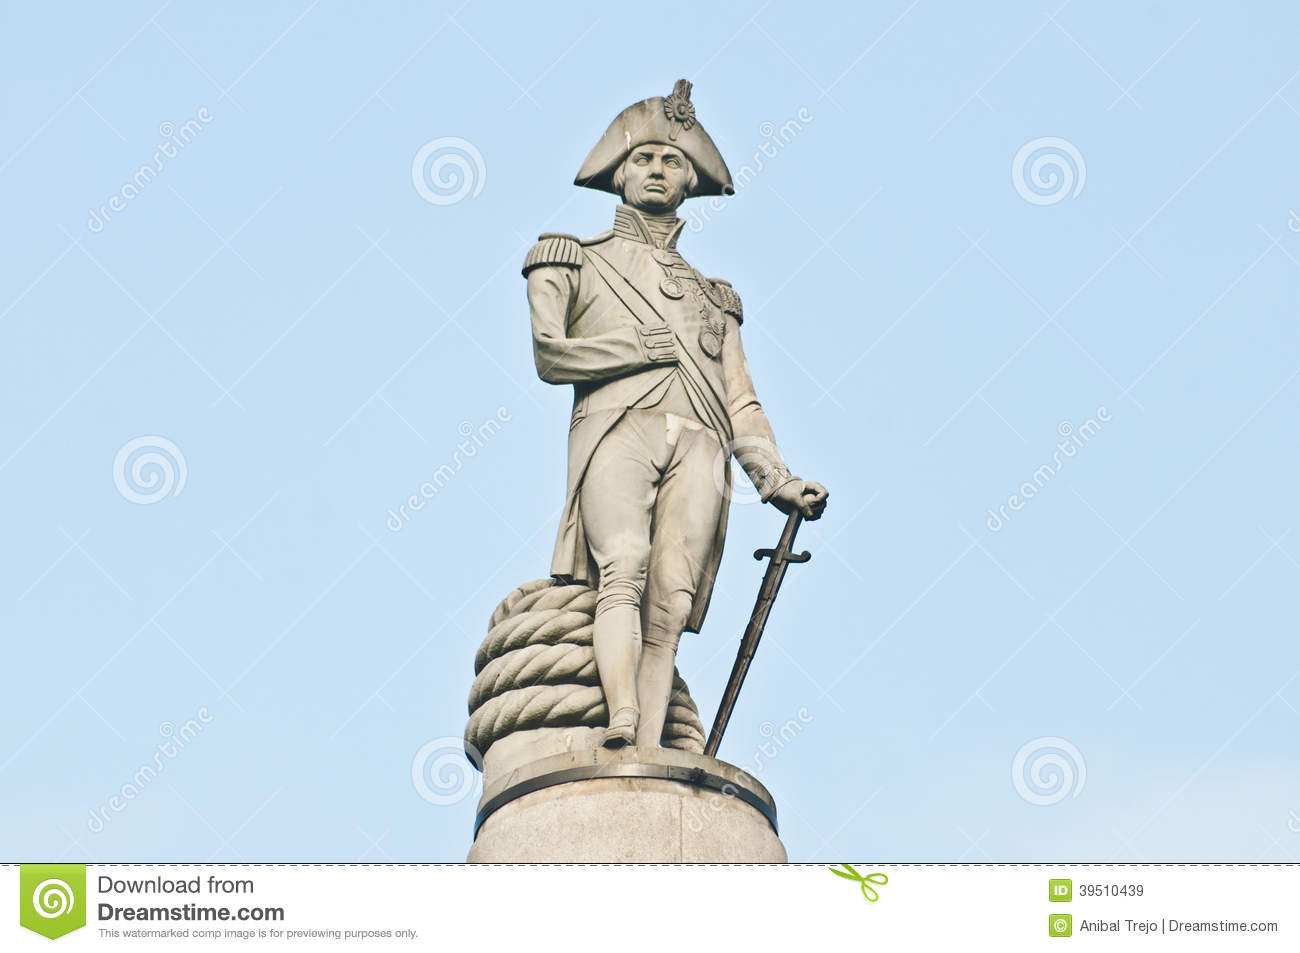 Nelsons Column at London, England